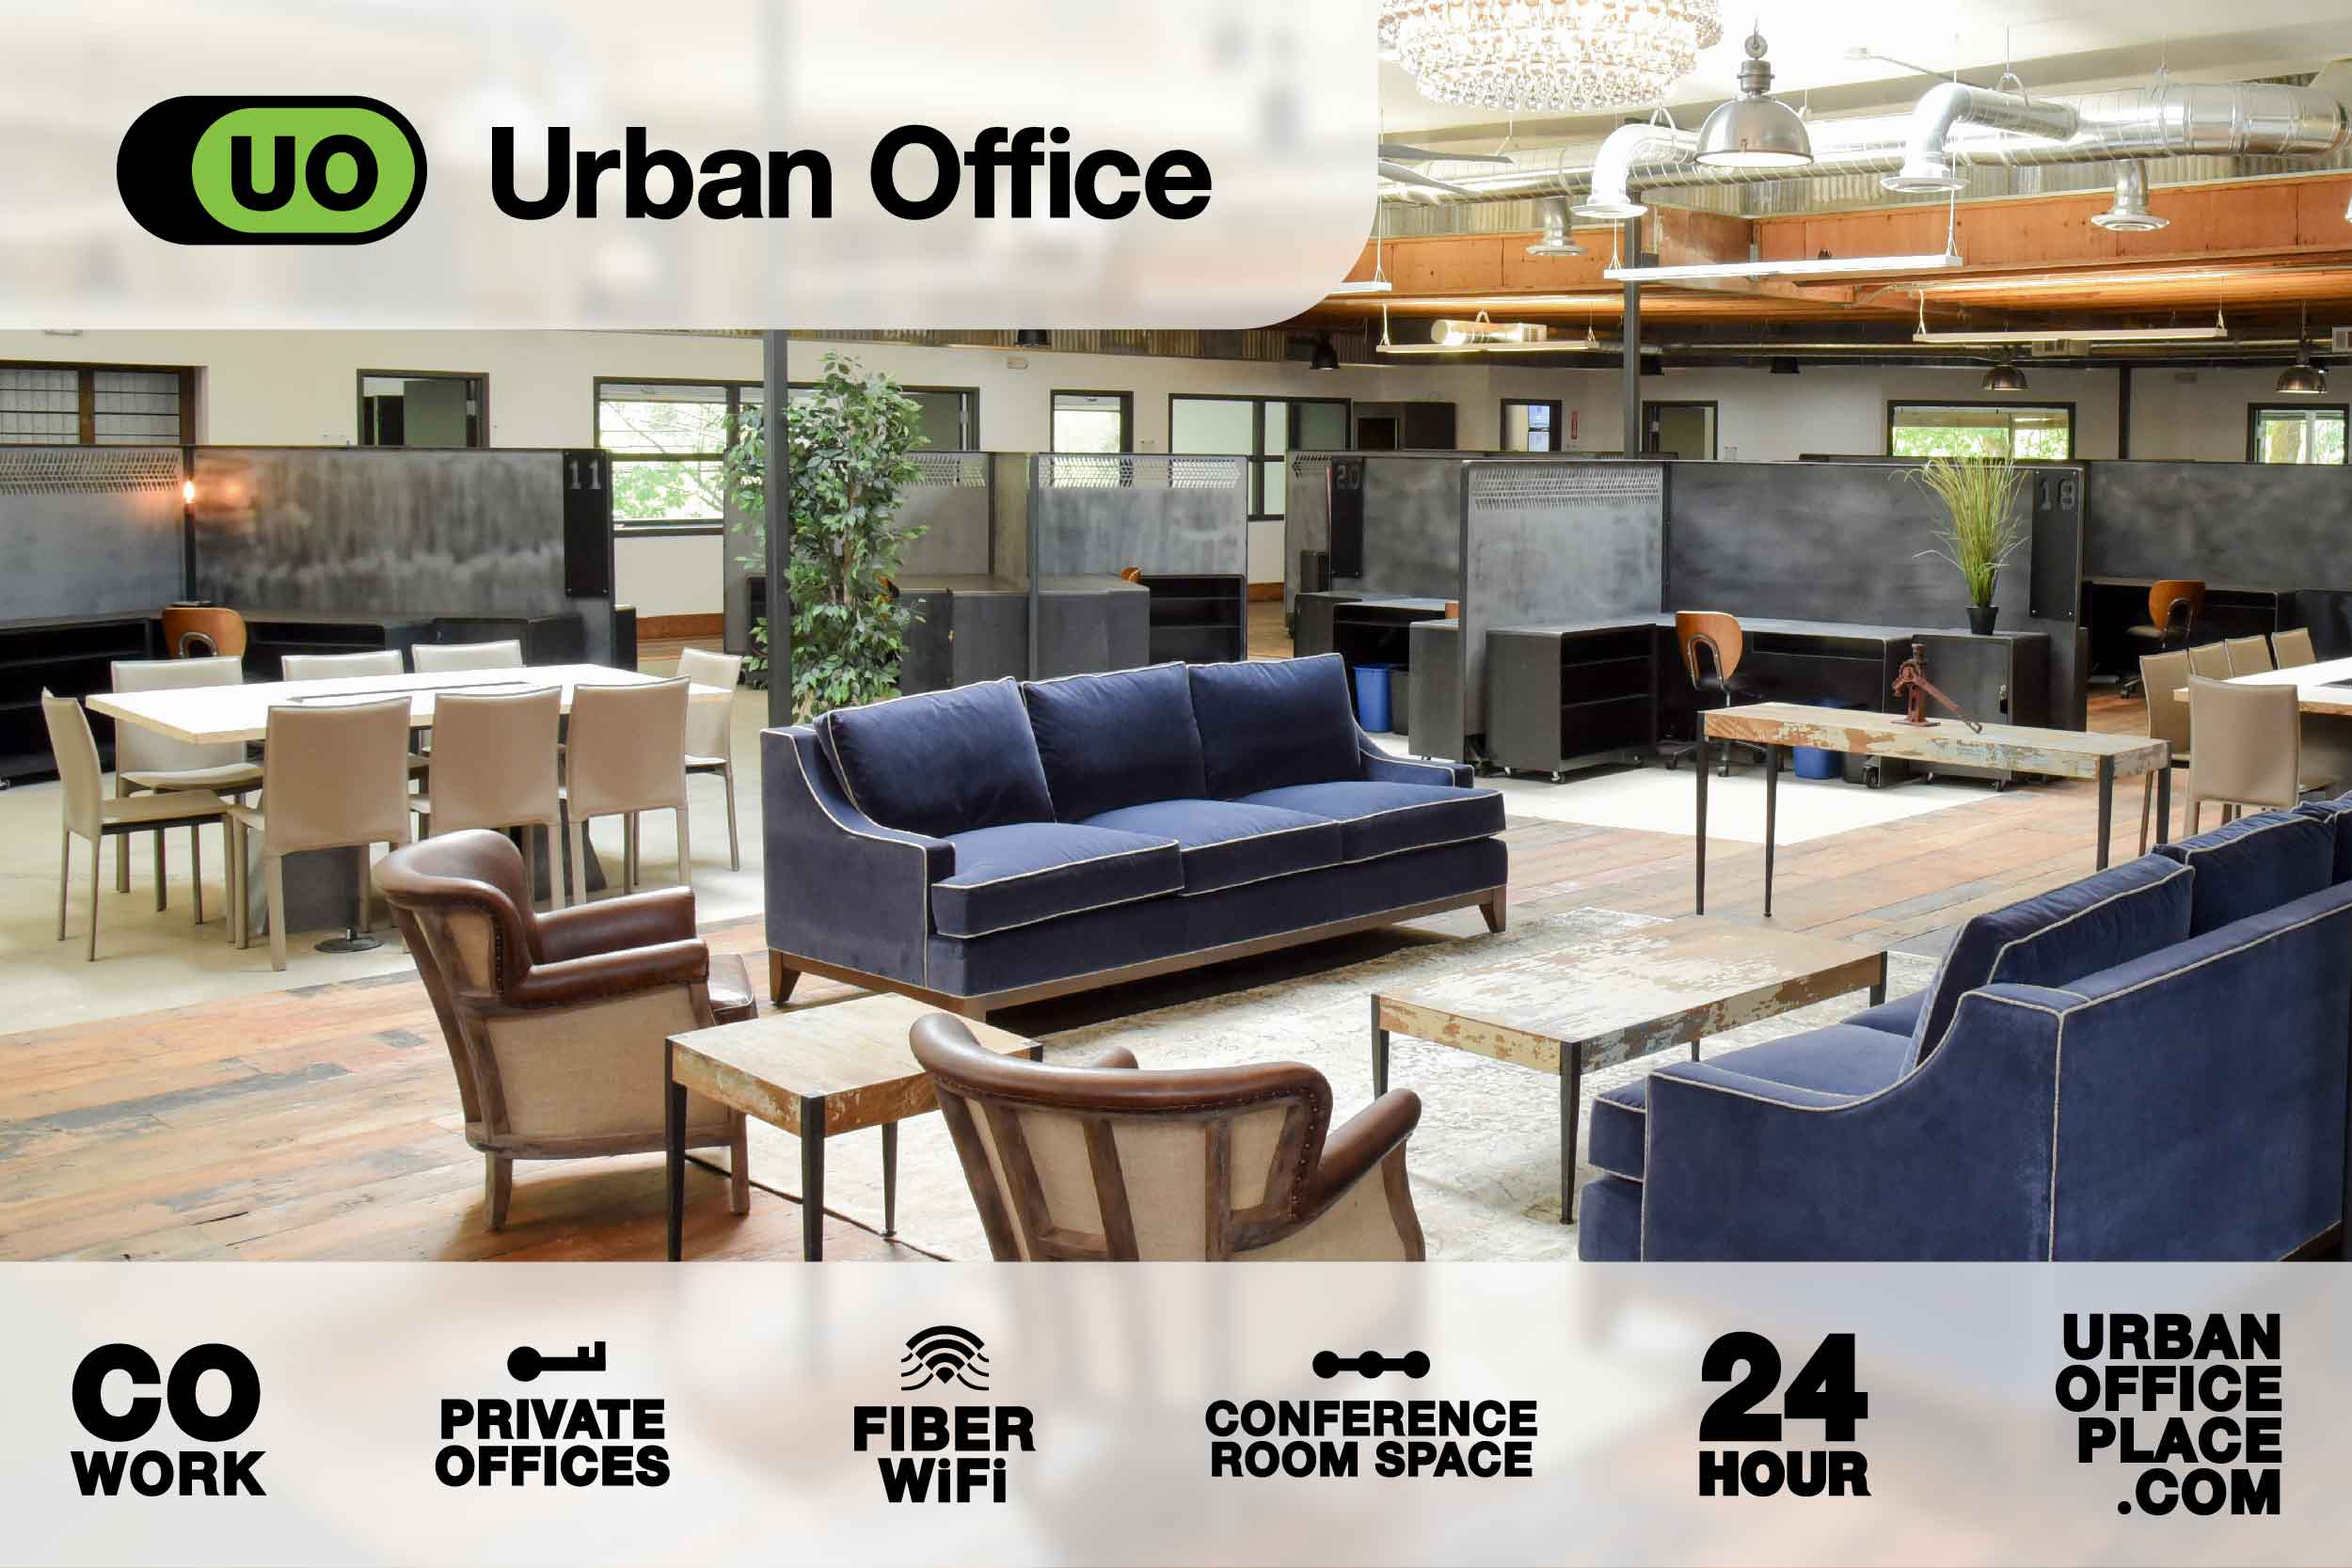 Urban Office: A Place To Connect